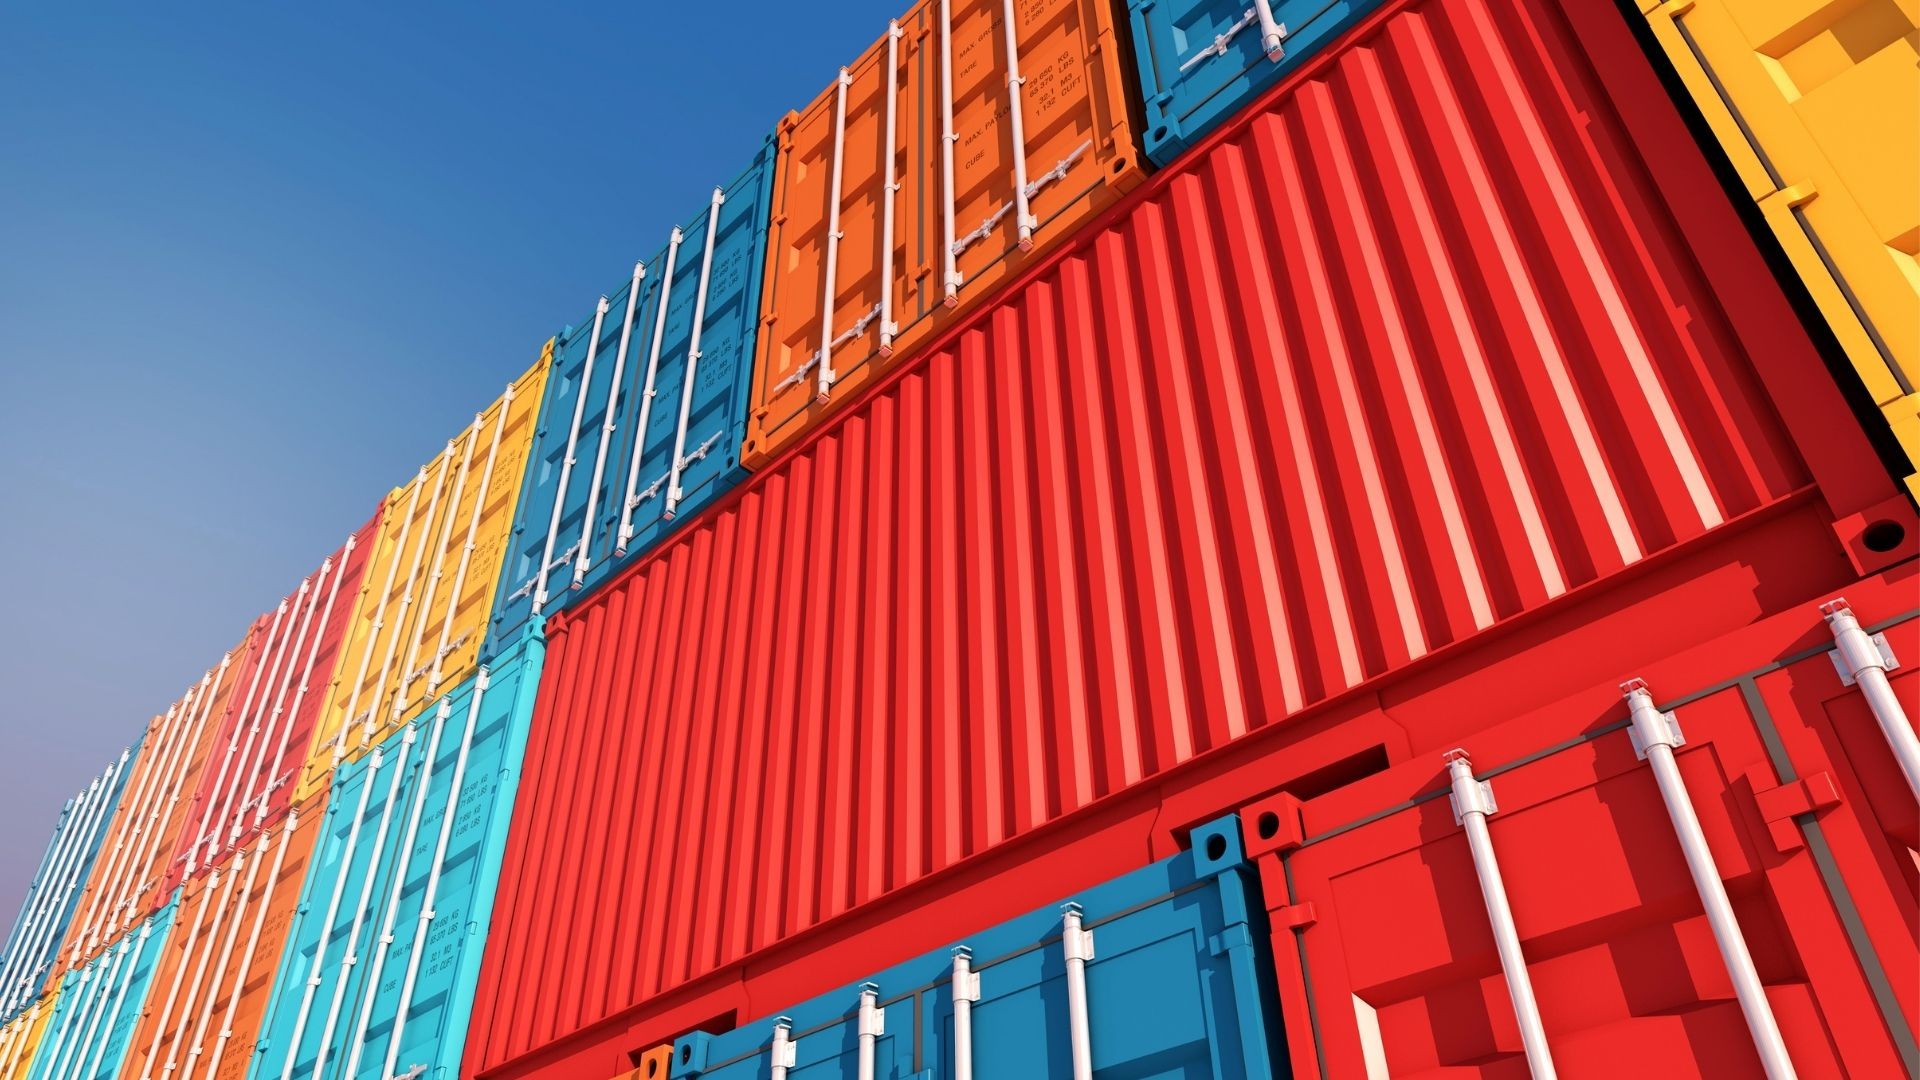 Irish Exporters Association CEO welcomes Government's ambitious Economic Recovery Plan